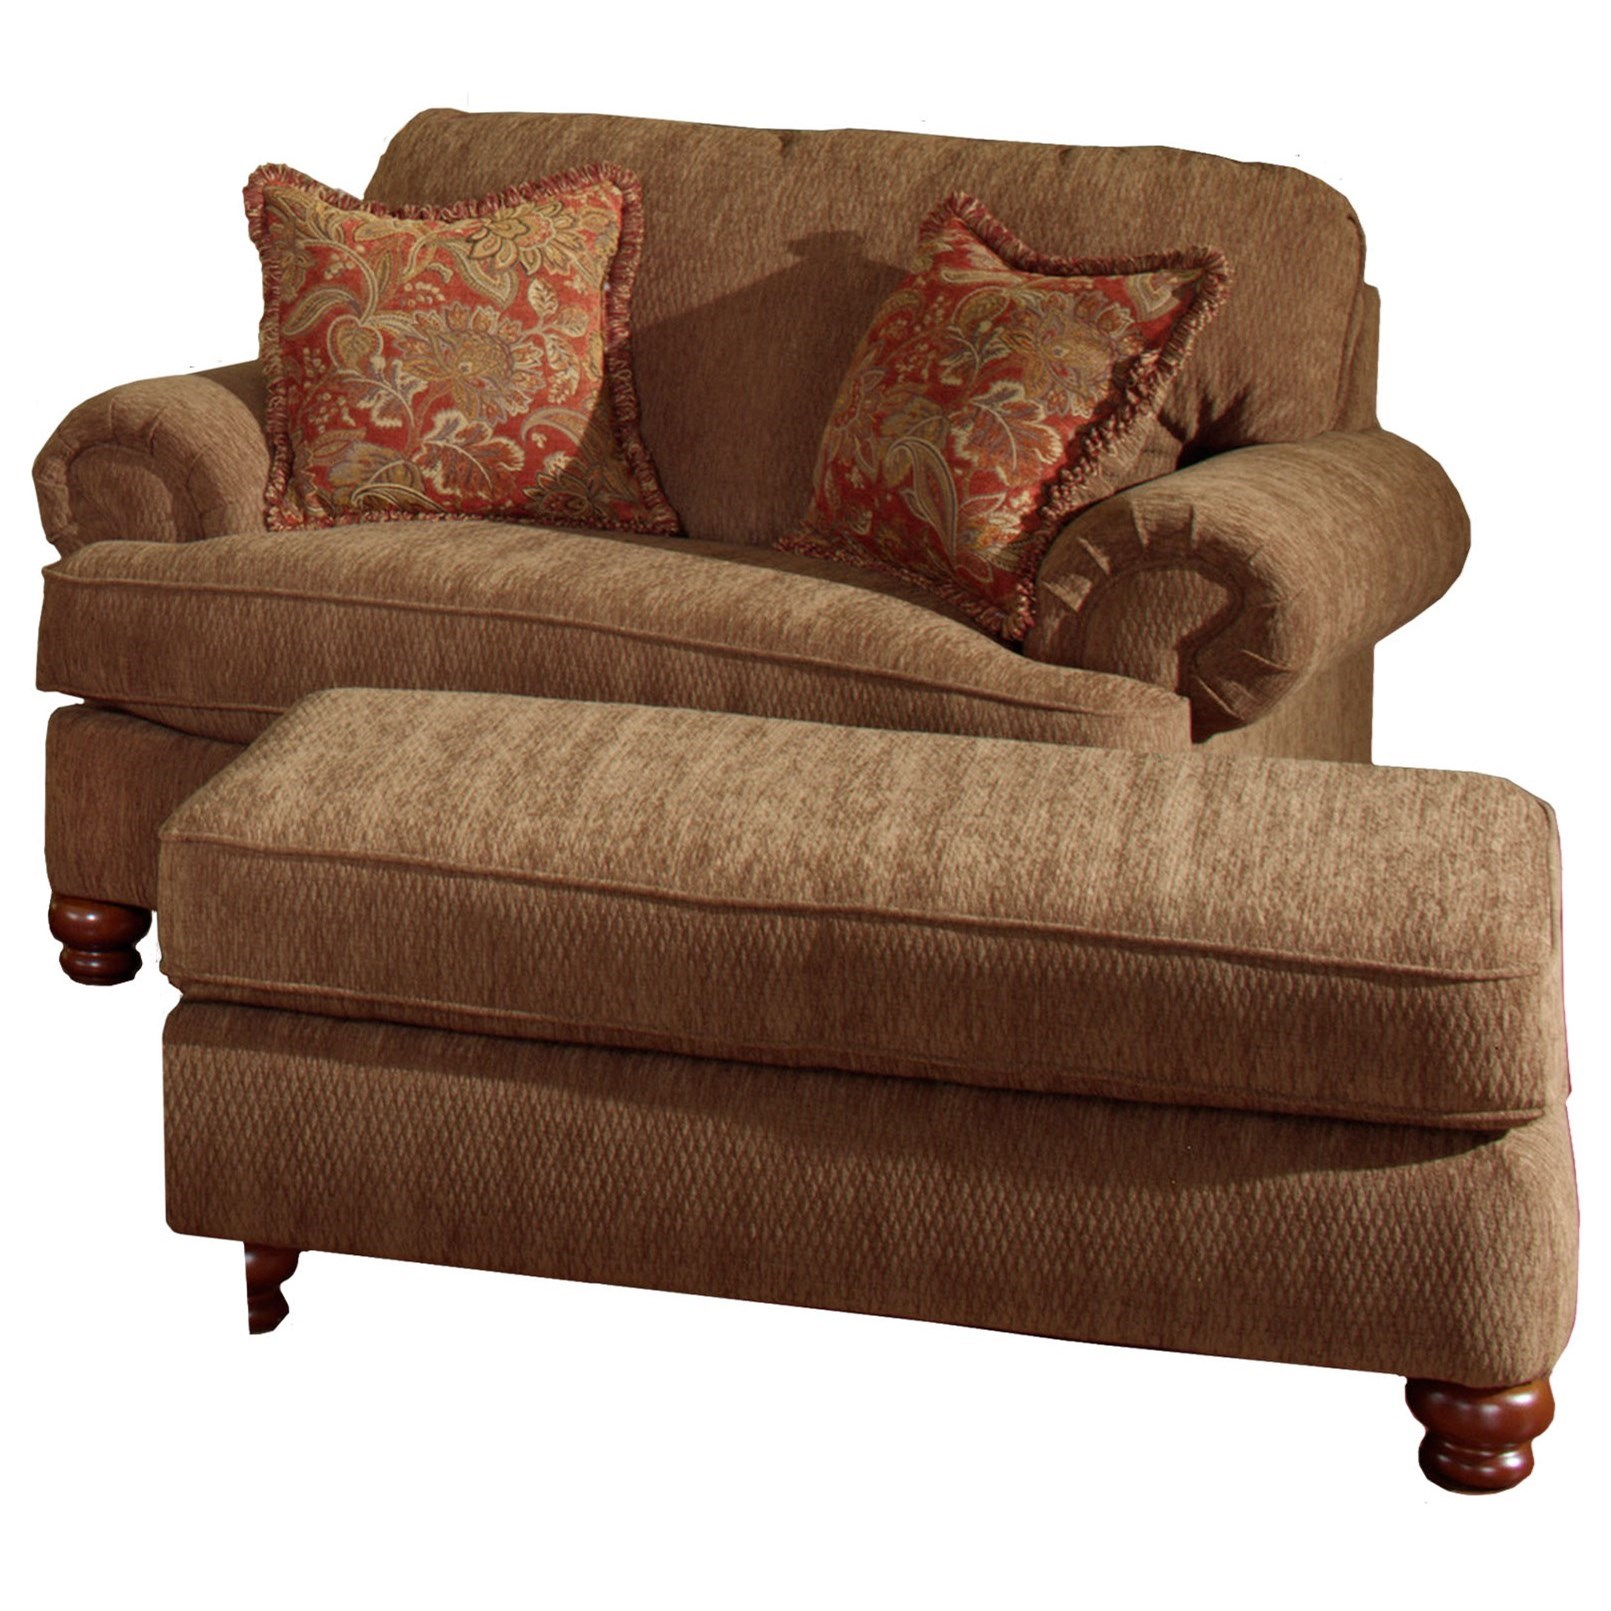 Chair and a Half & Ottoman by Jackson Furniture